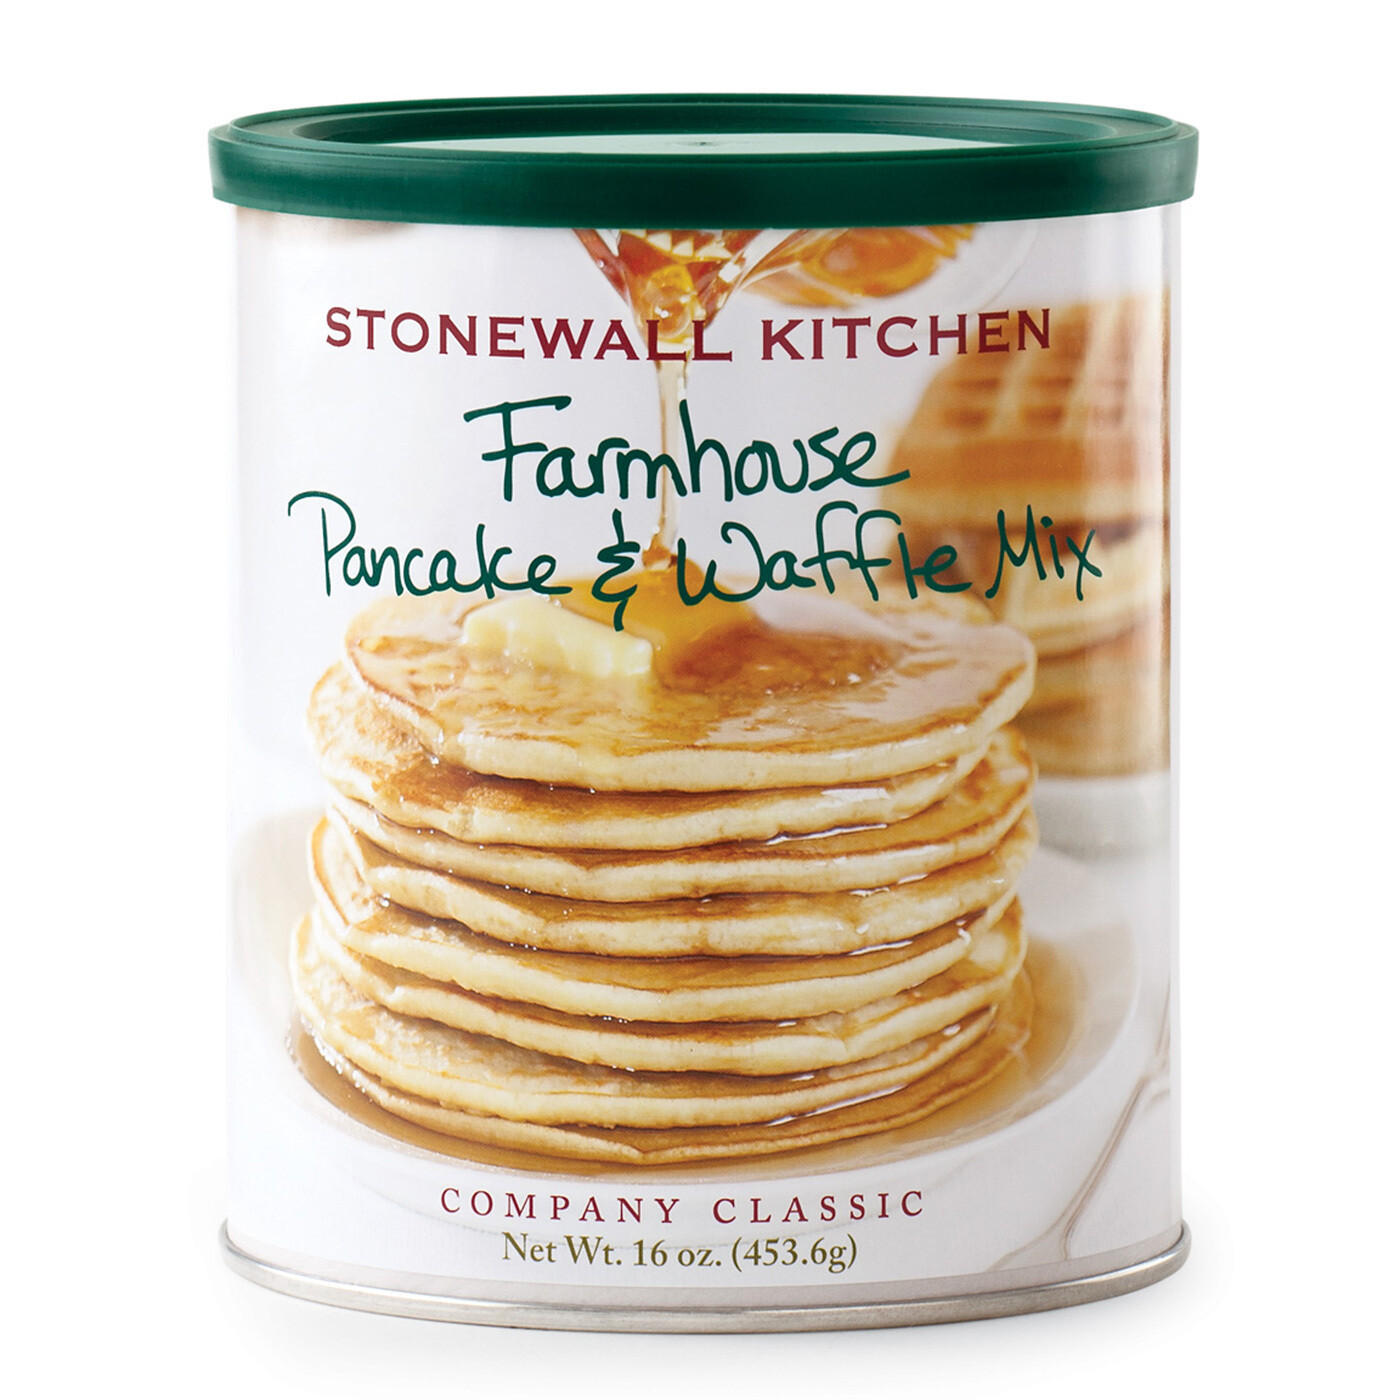 16 oz Farmhouse Pancake and Waffle Mix